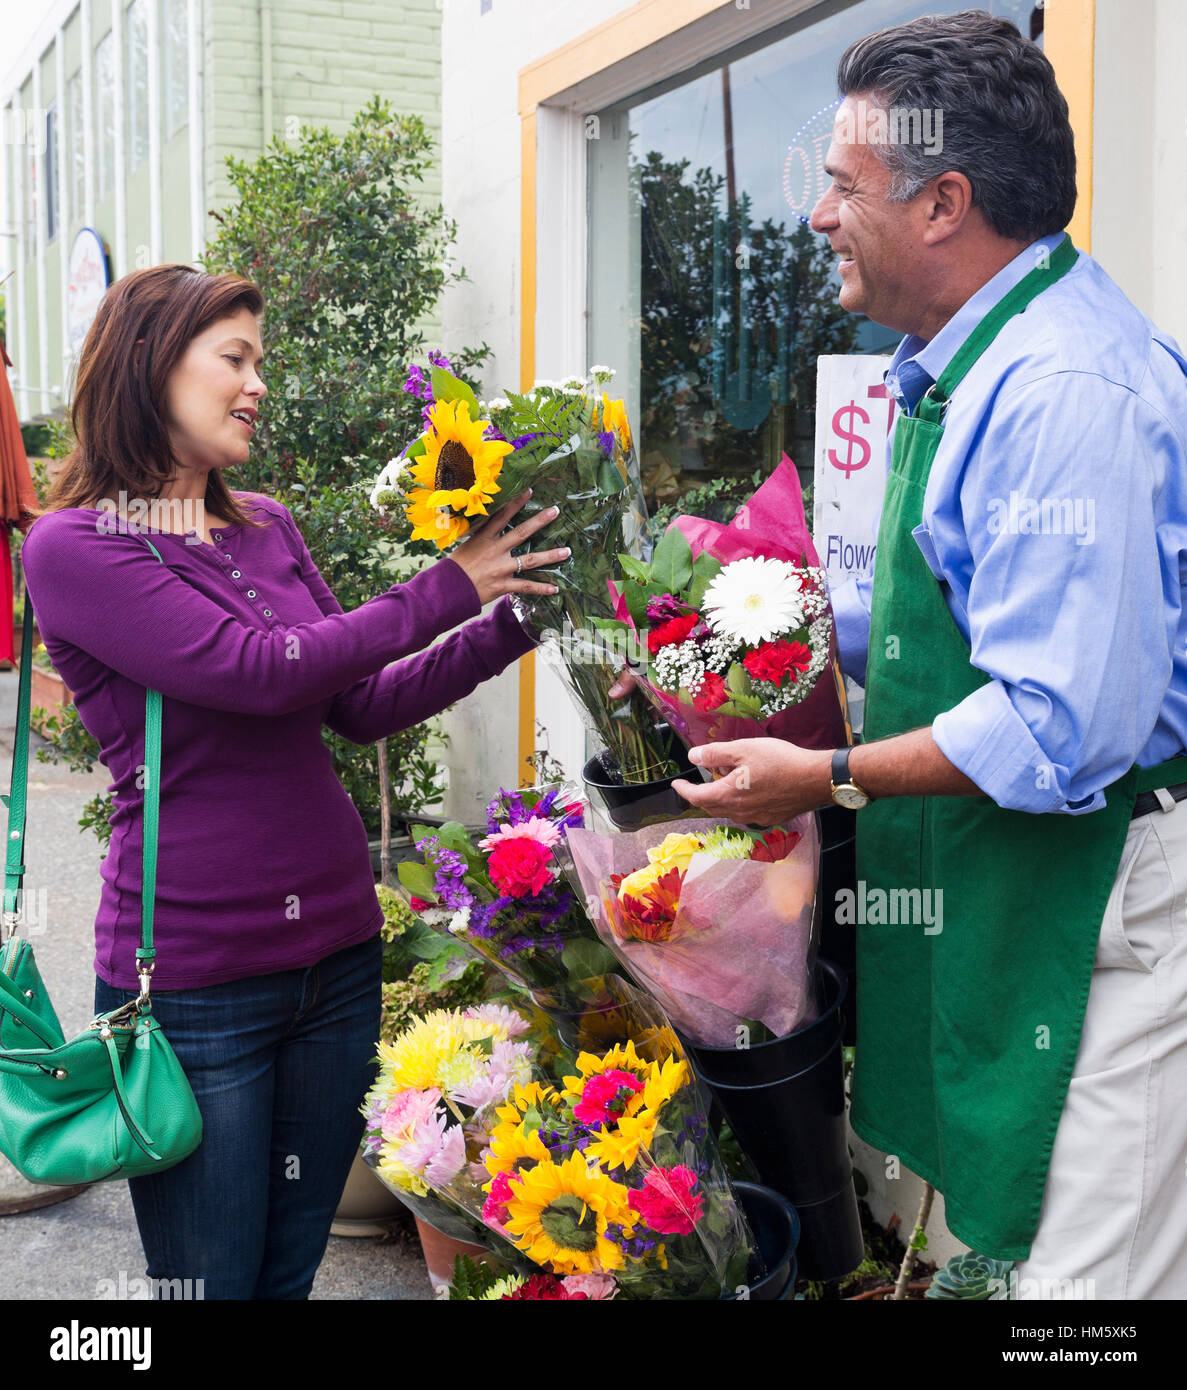 Woman choosing flowers with florist - Stock Image